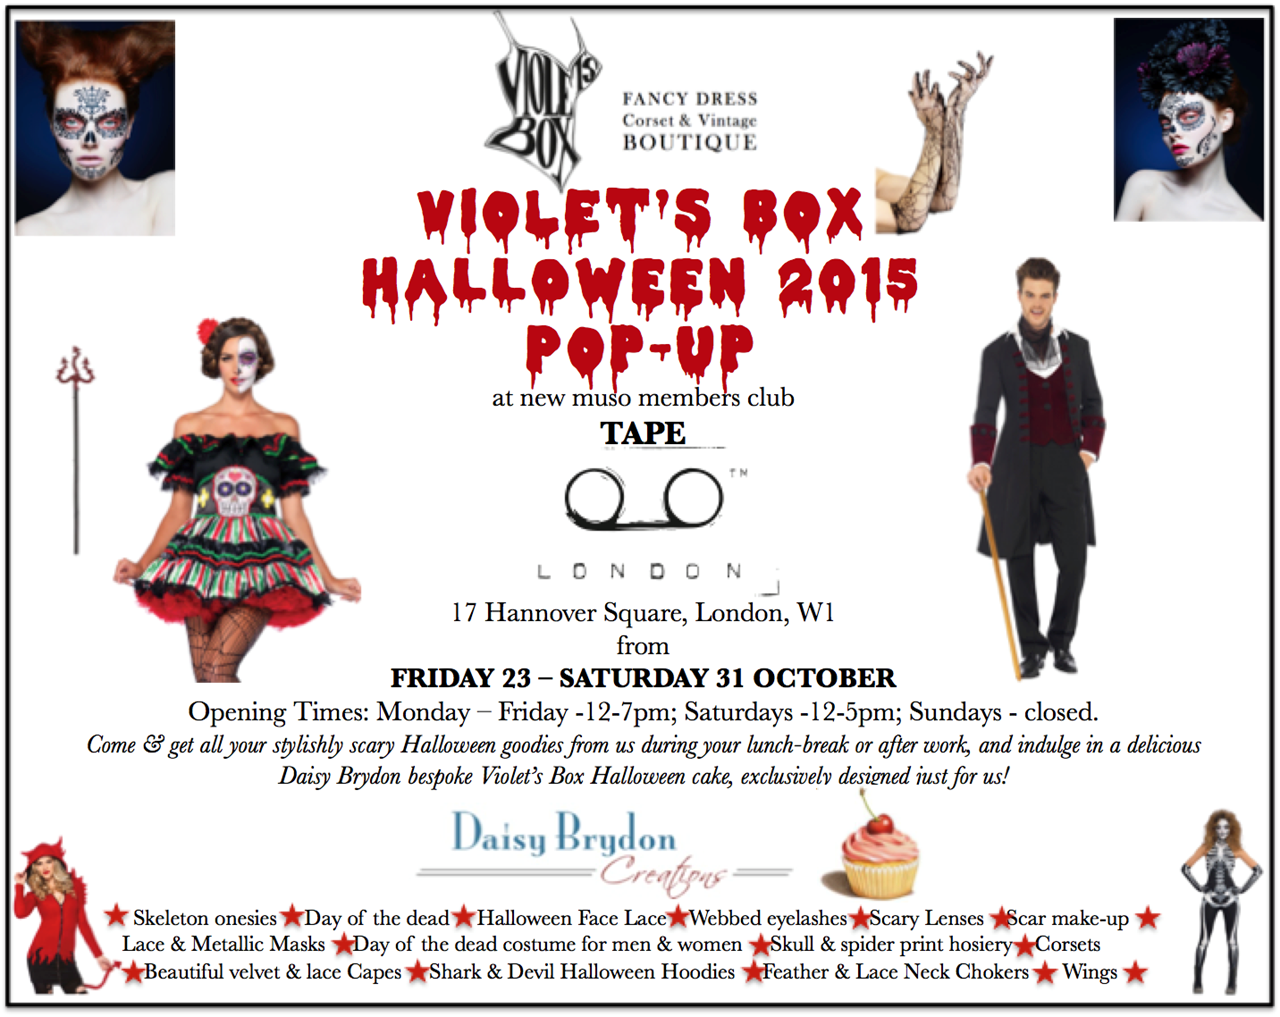 http://www.violetsbox.com/blog/halloween2015/